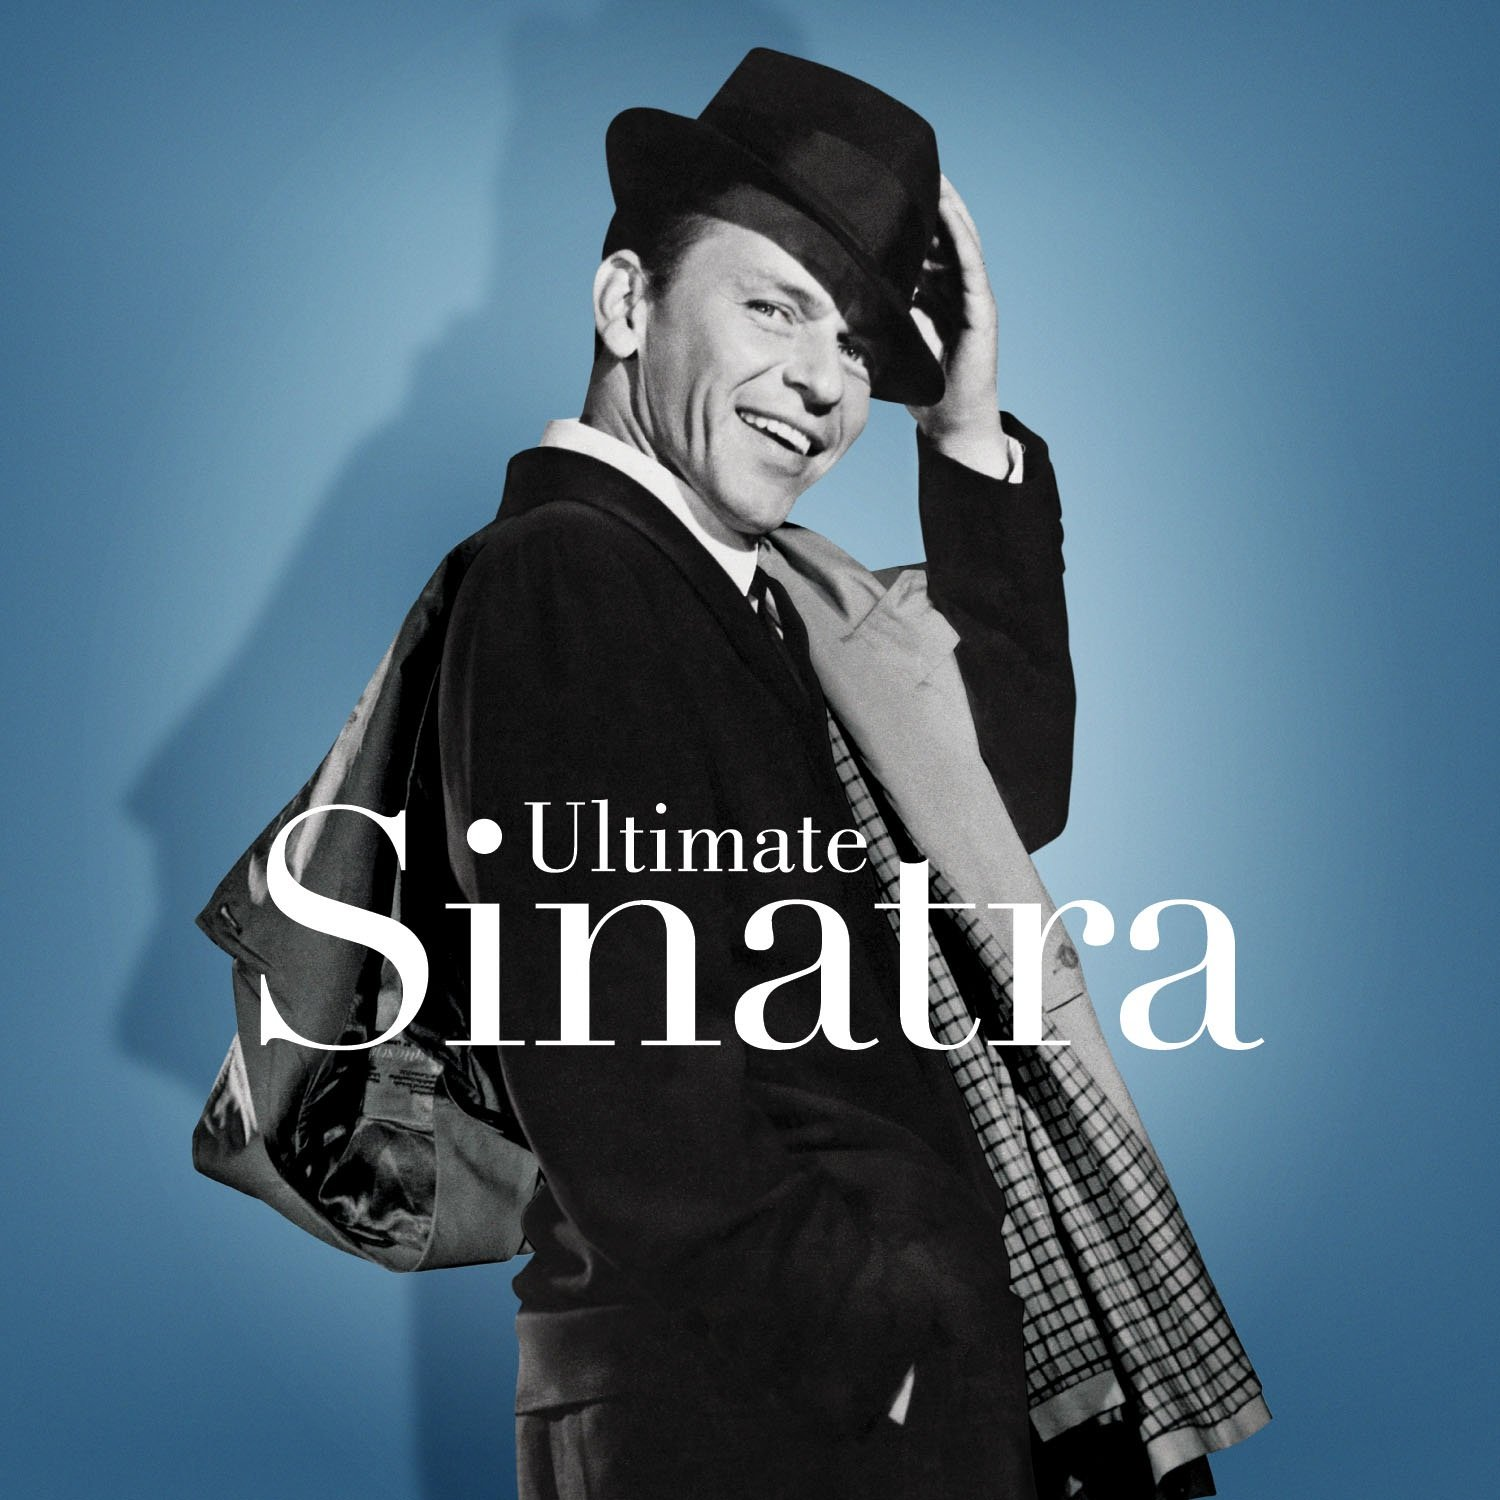 Ultimate Sinatra [2 LP] by Ume